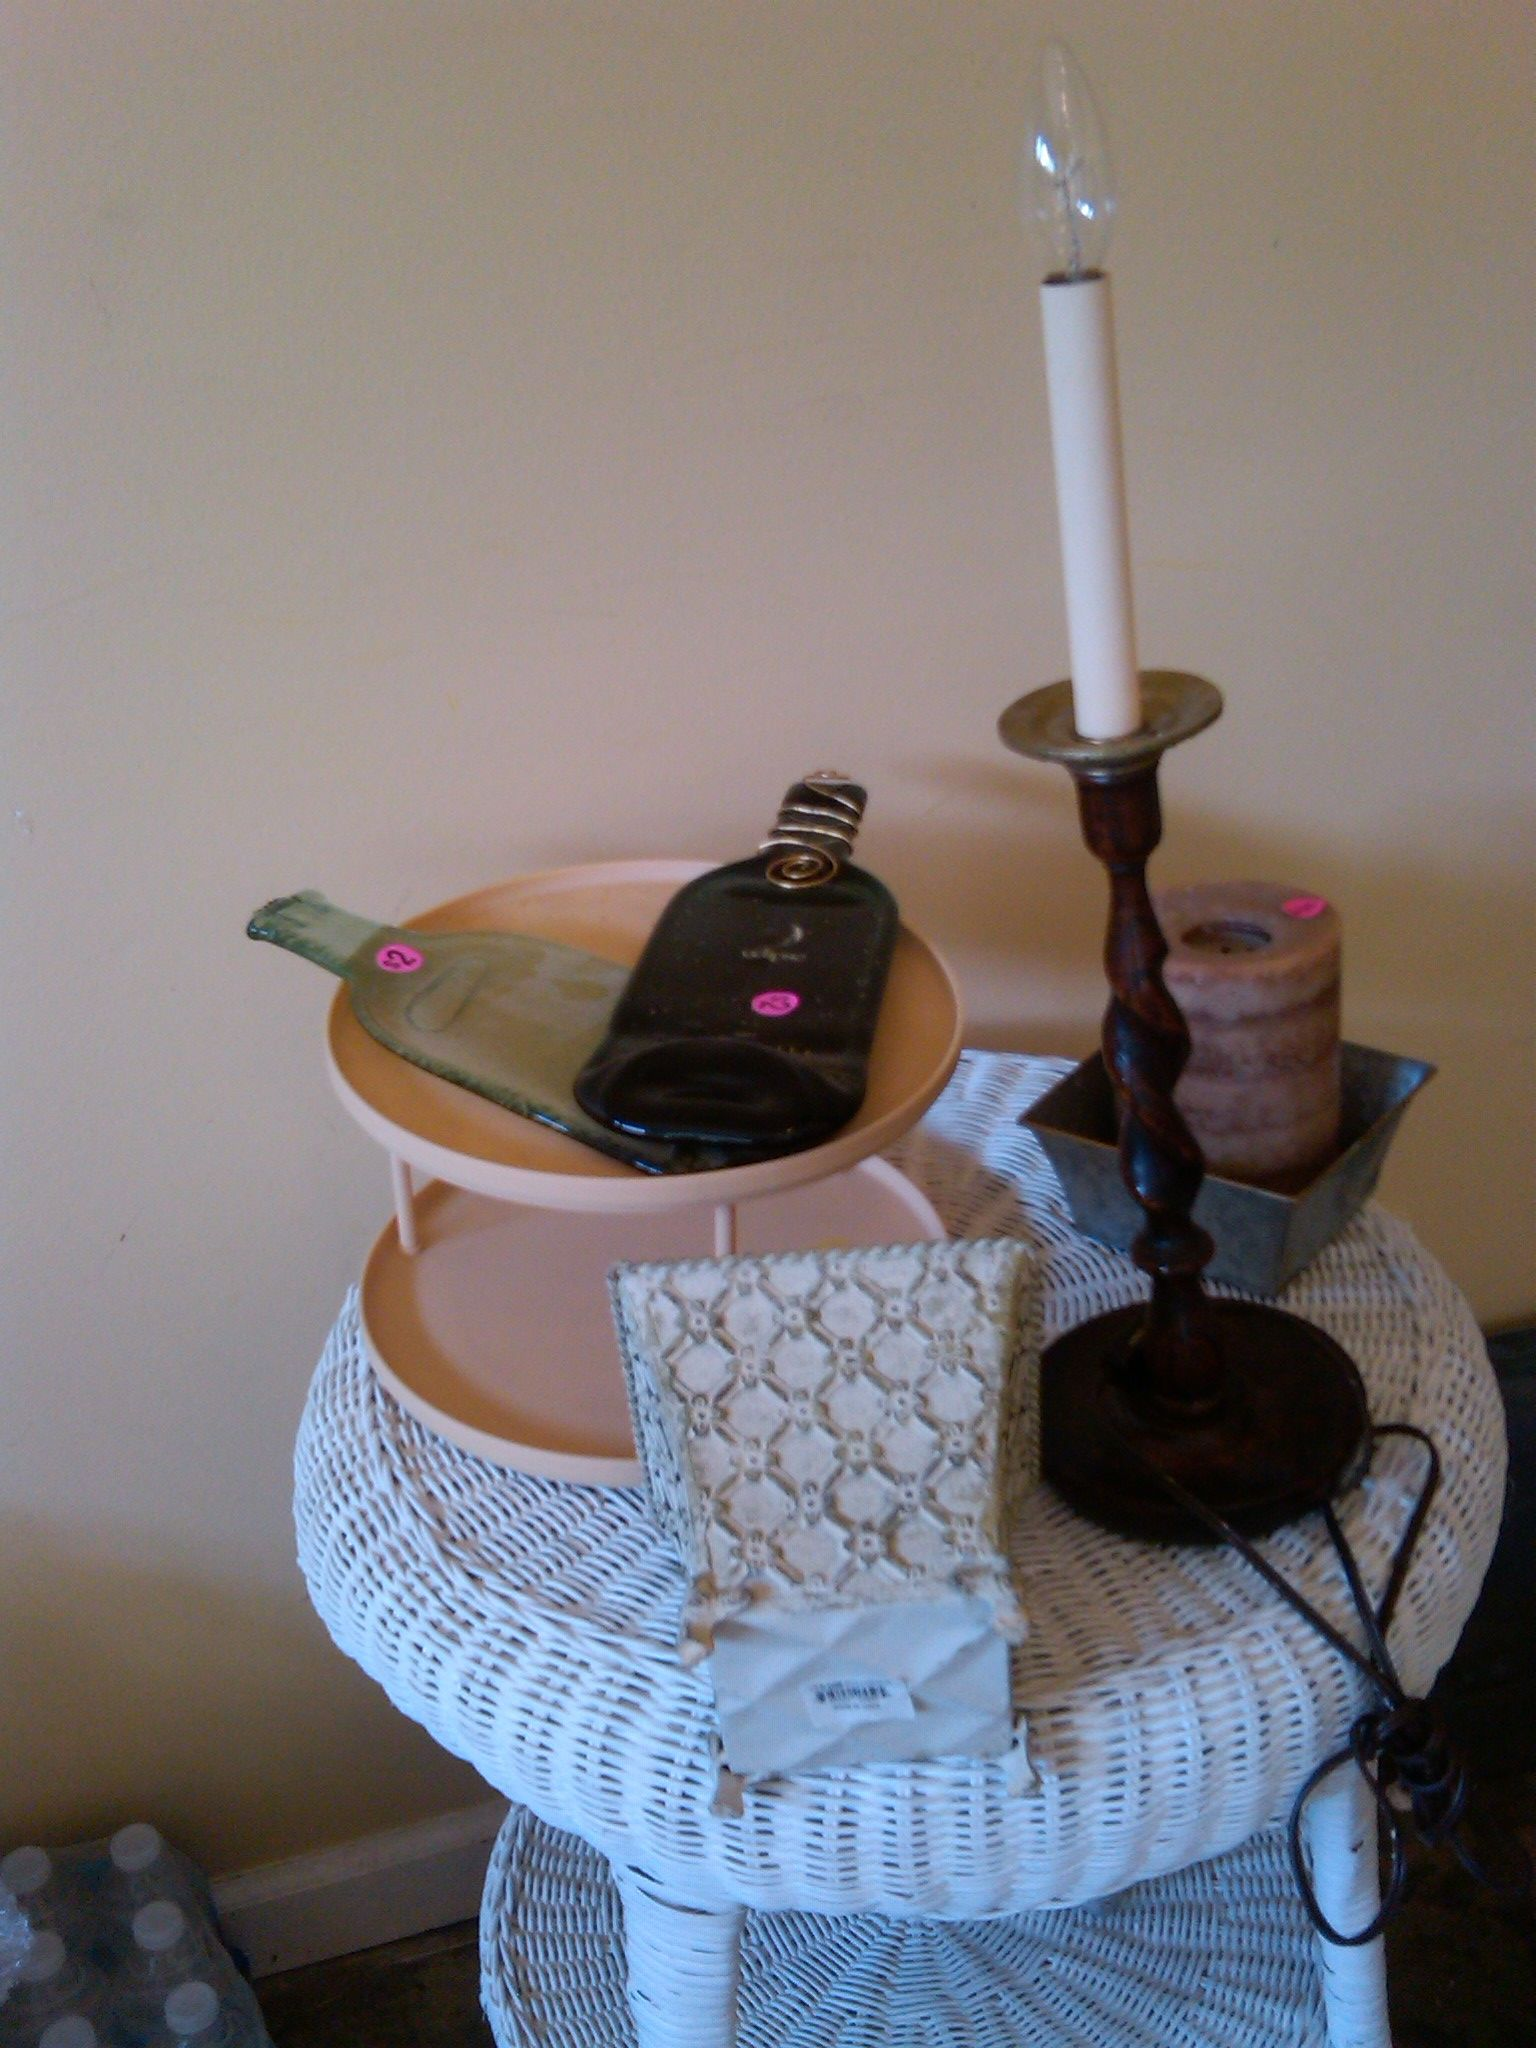 I found the rotating spice rack for a dollar at a yard sale at 7 AM! The two tins (50 cents each) will go on my bathroom wire étagère for my makeup! The fat candle (normally twelve fifty at stores) I found for 50 cents. Mama found the lamp as her treasure for ten dollars. My personal total? $7!